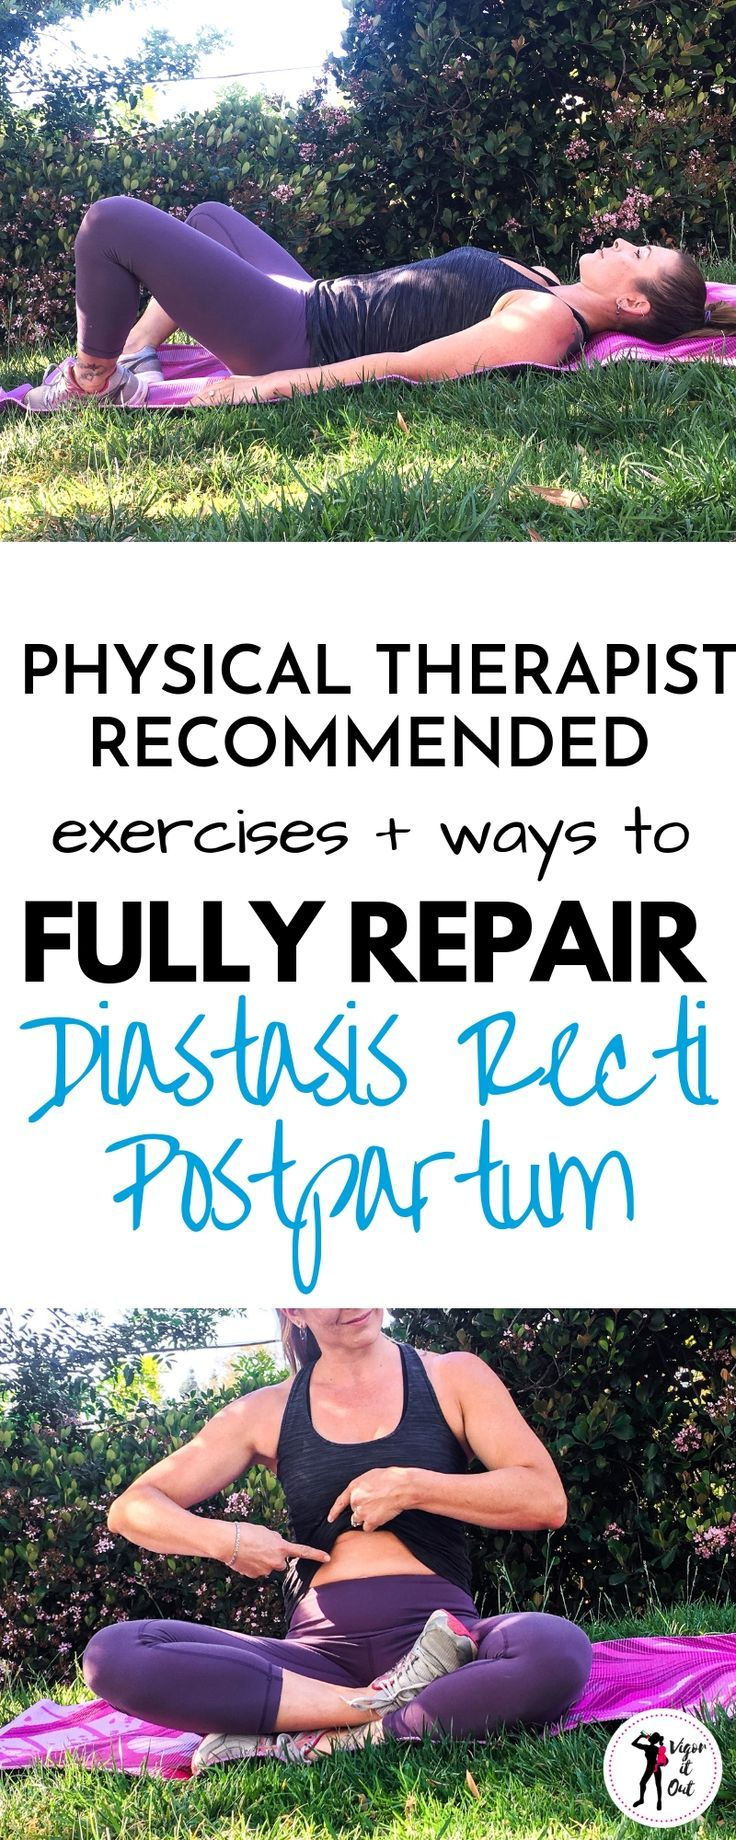 A Physical Therapist Explains how to Prevent and Repair Diastasis Recti – Jennifer Hooper